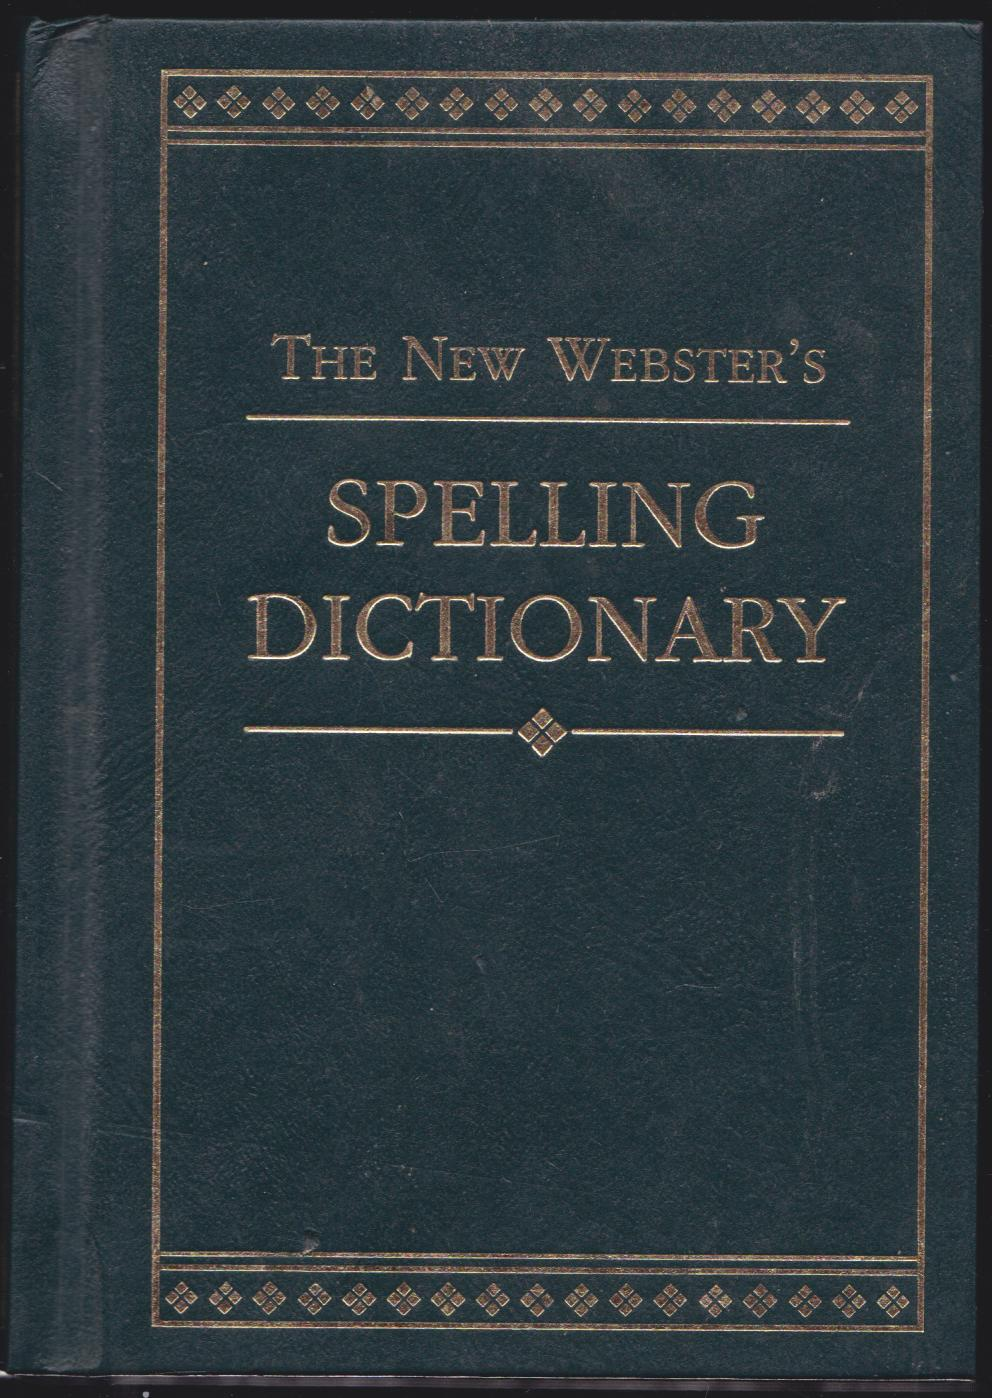 THE NEW WEBSTER 'S SPELLING DICTIONARY